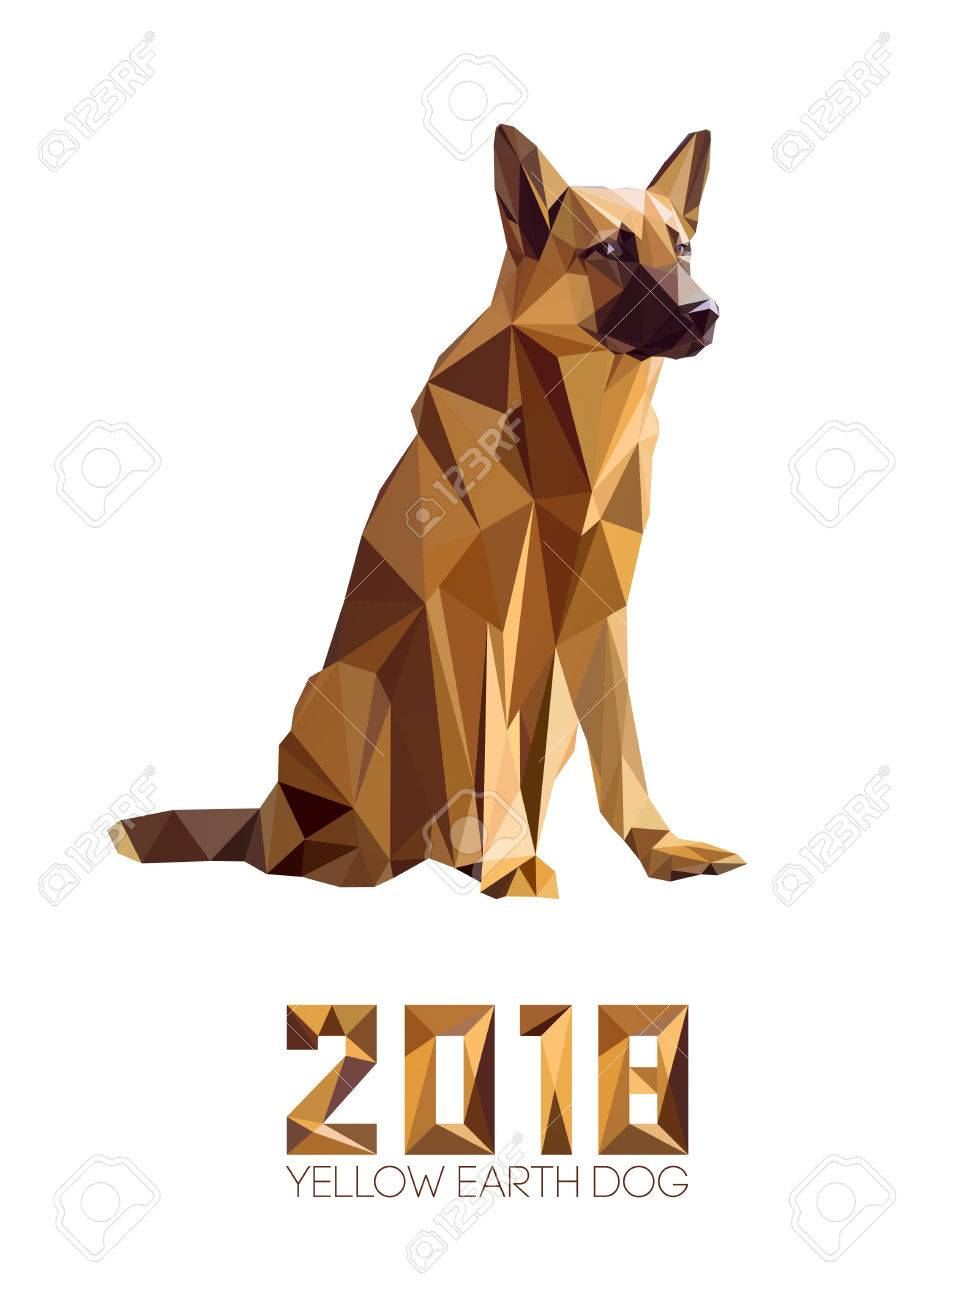 Dog is symbol of new 2018 year according to chinese calendar dog is symbol of new 2018 year according to chinese calendar year of yellow earth biocorpaavc